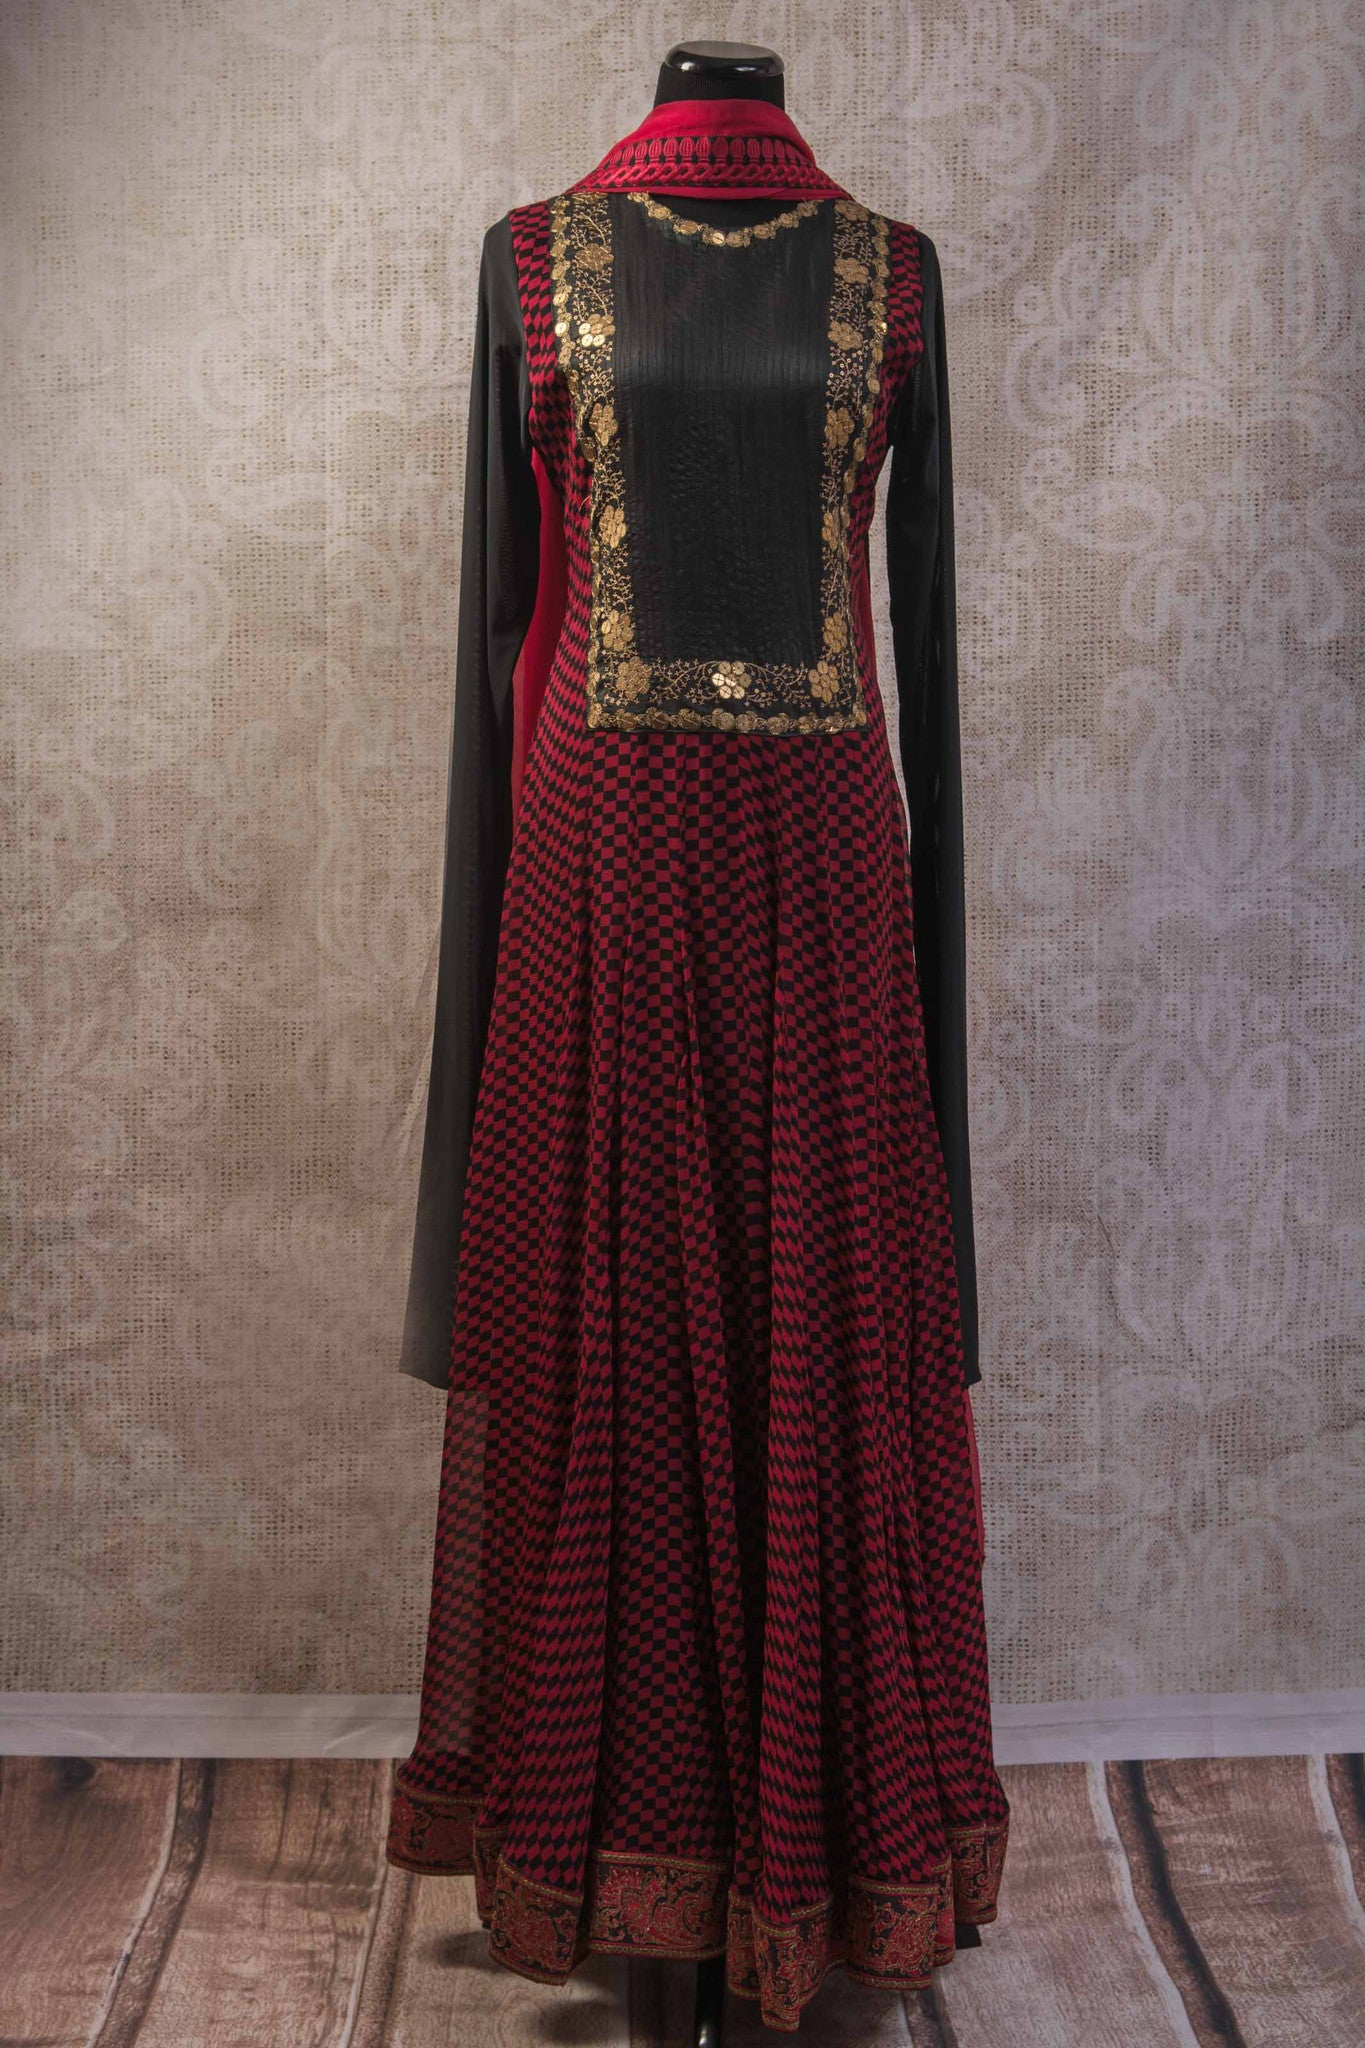 500942-suit-long-sleeve-red-black-geometric-pattern-with-gold-embroidery-and-scarf